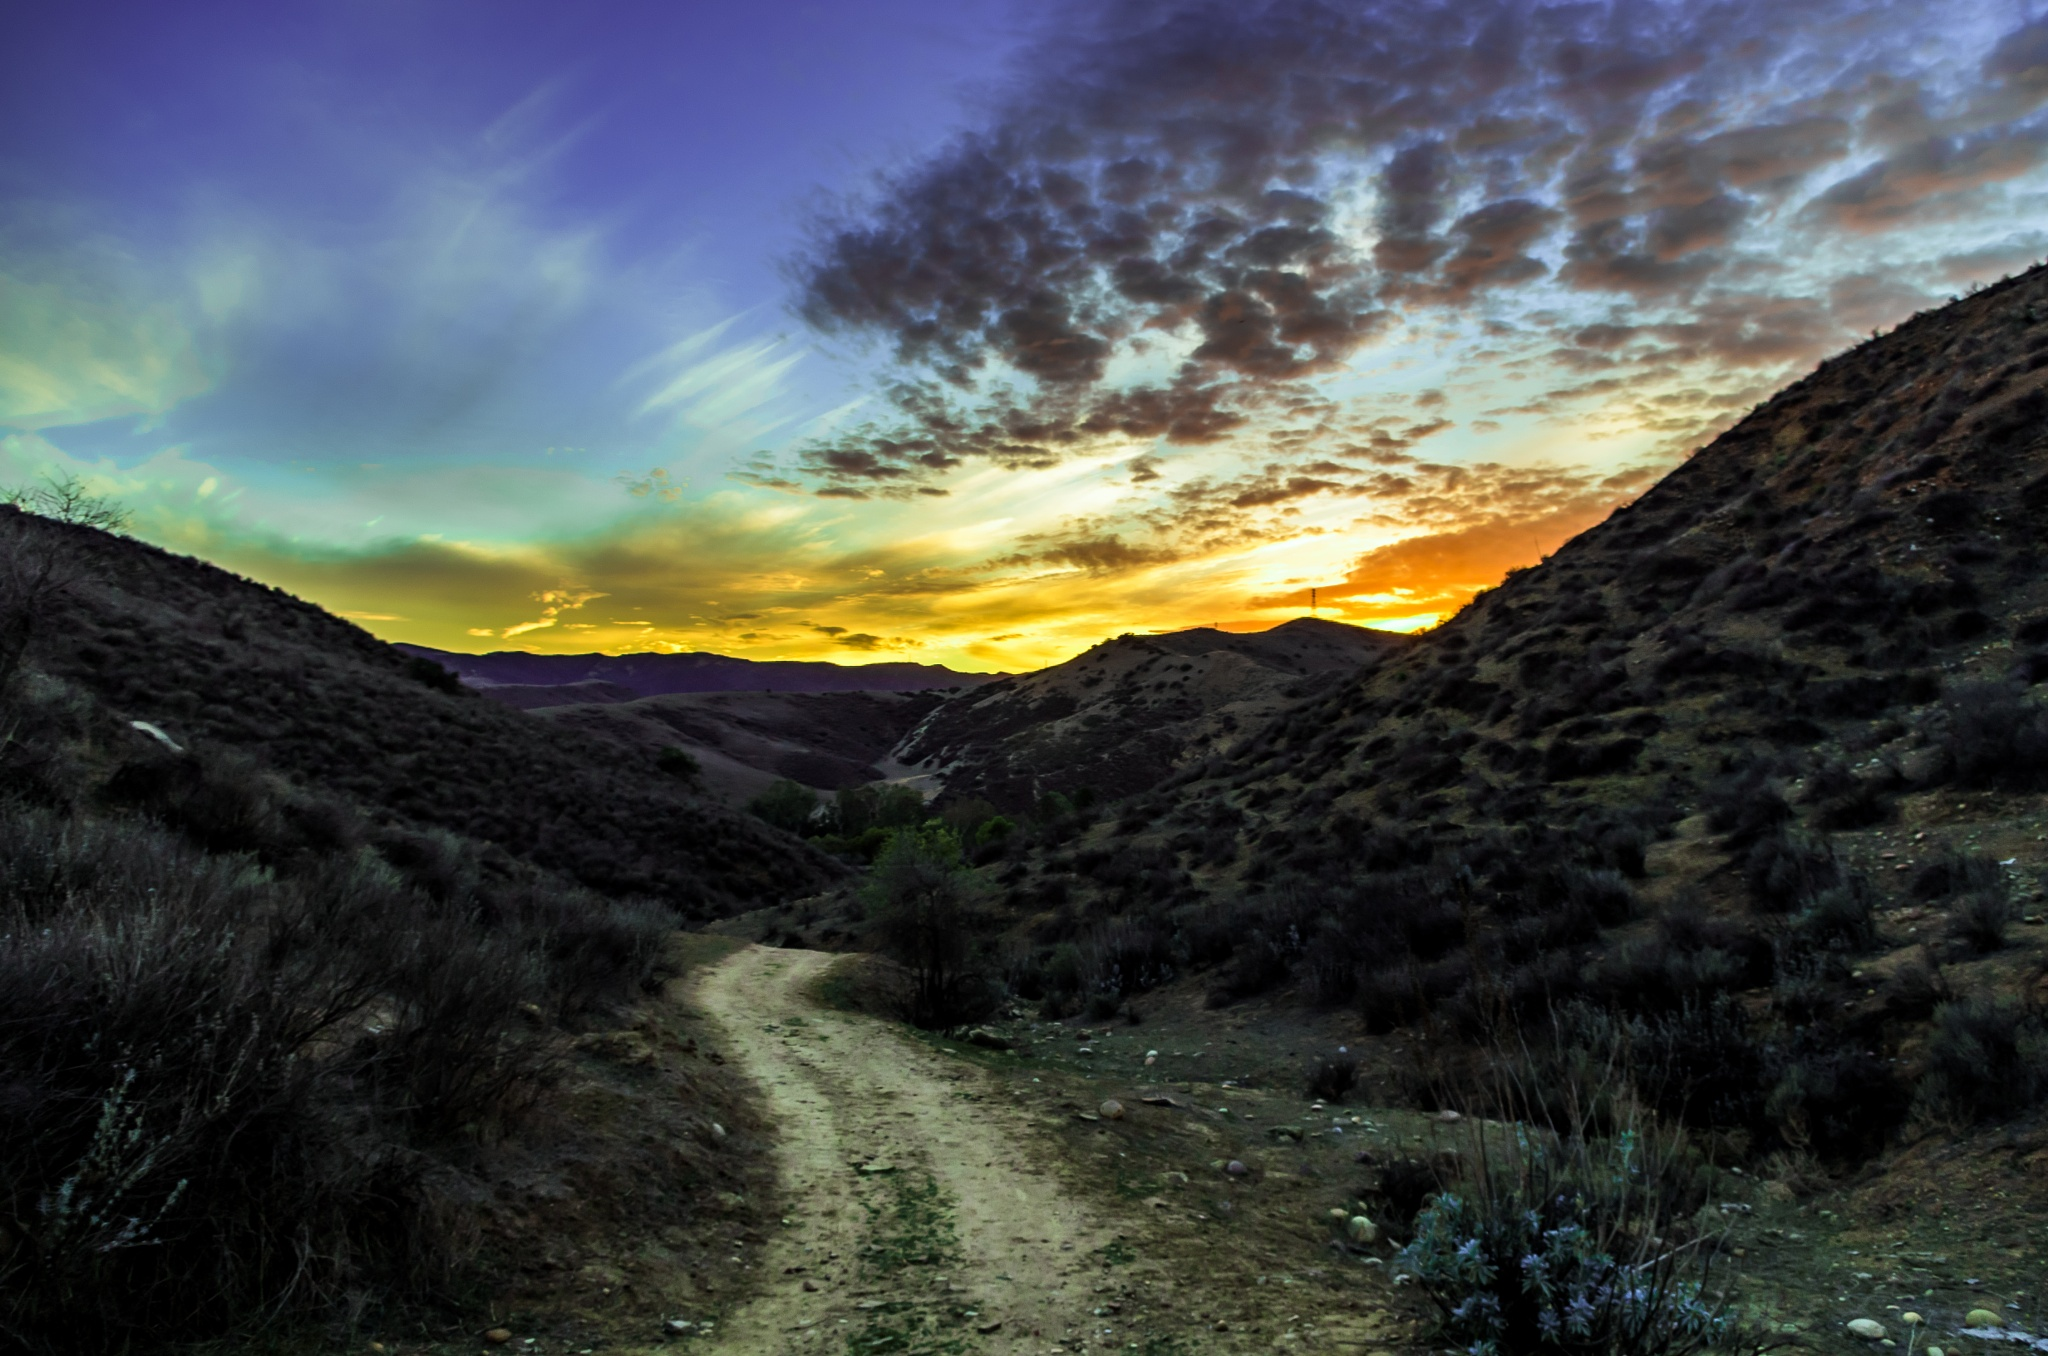 Trail to the Sun by ReaperScoob Photography